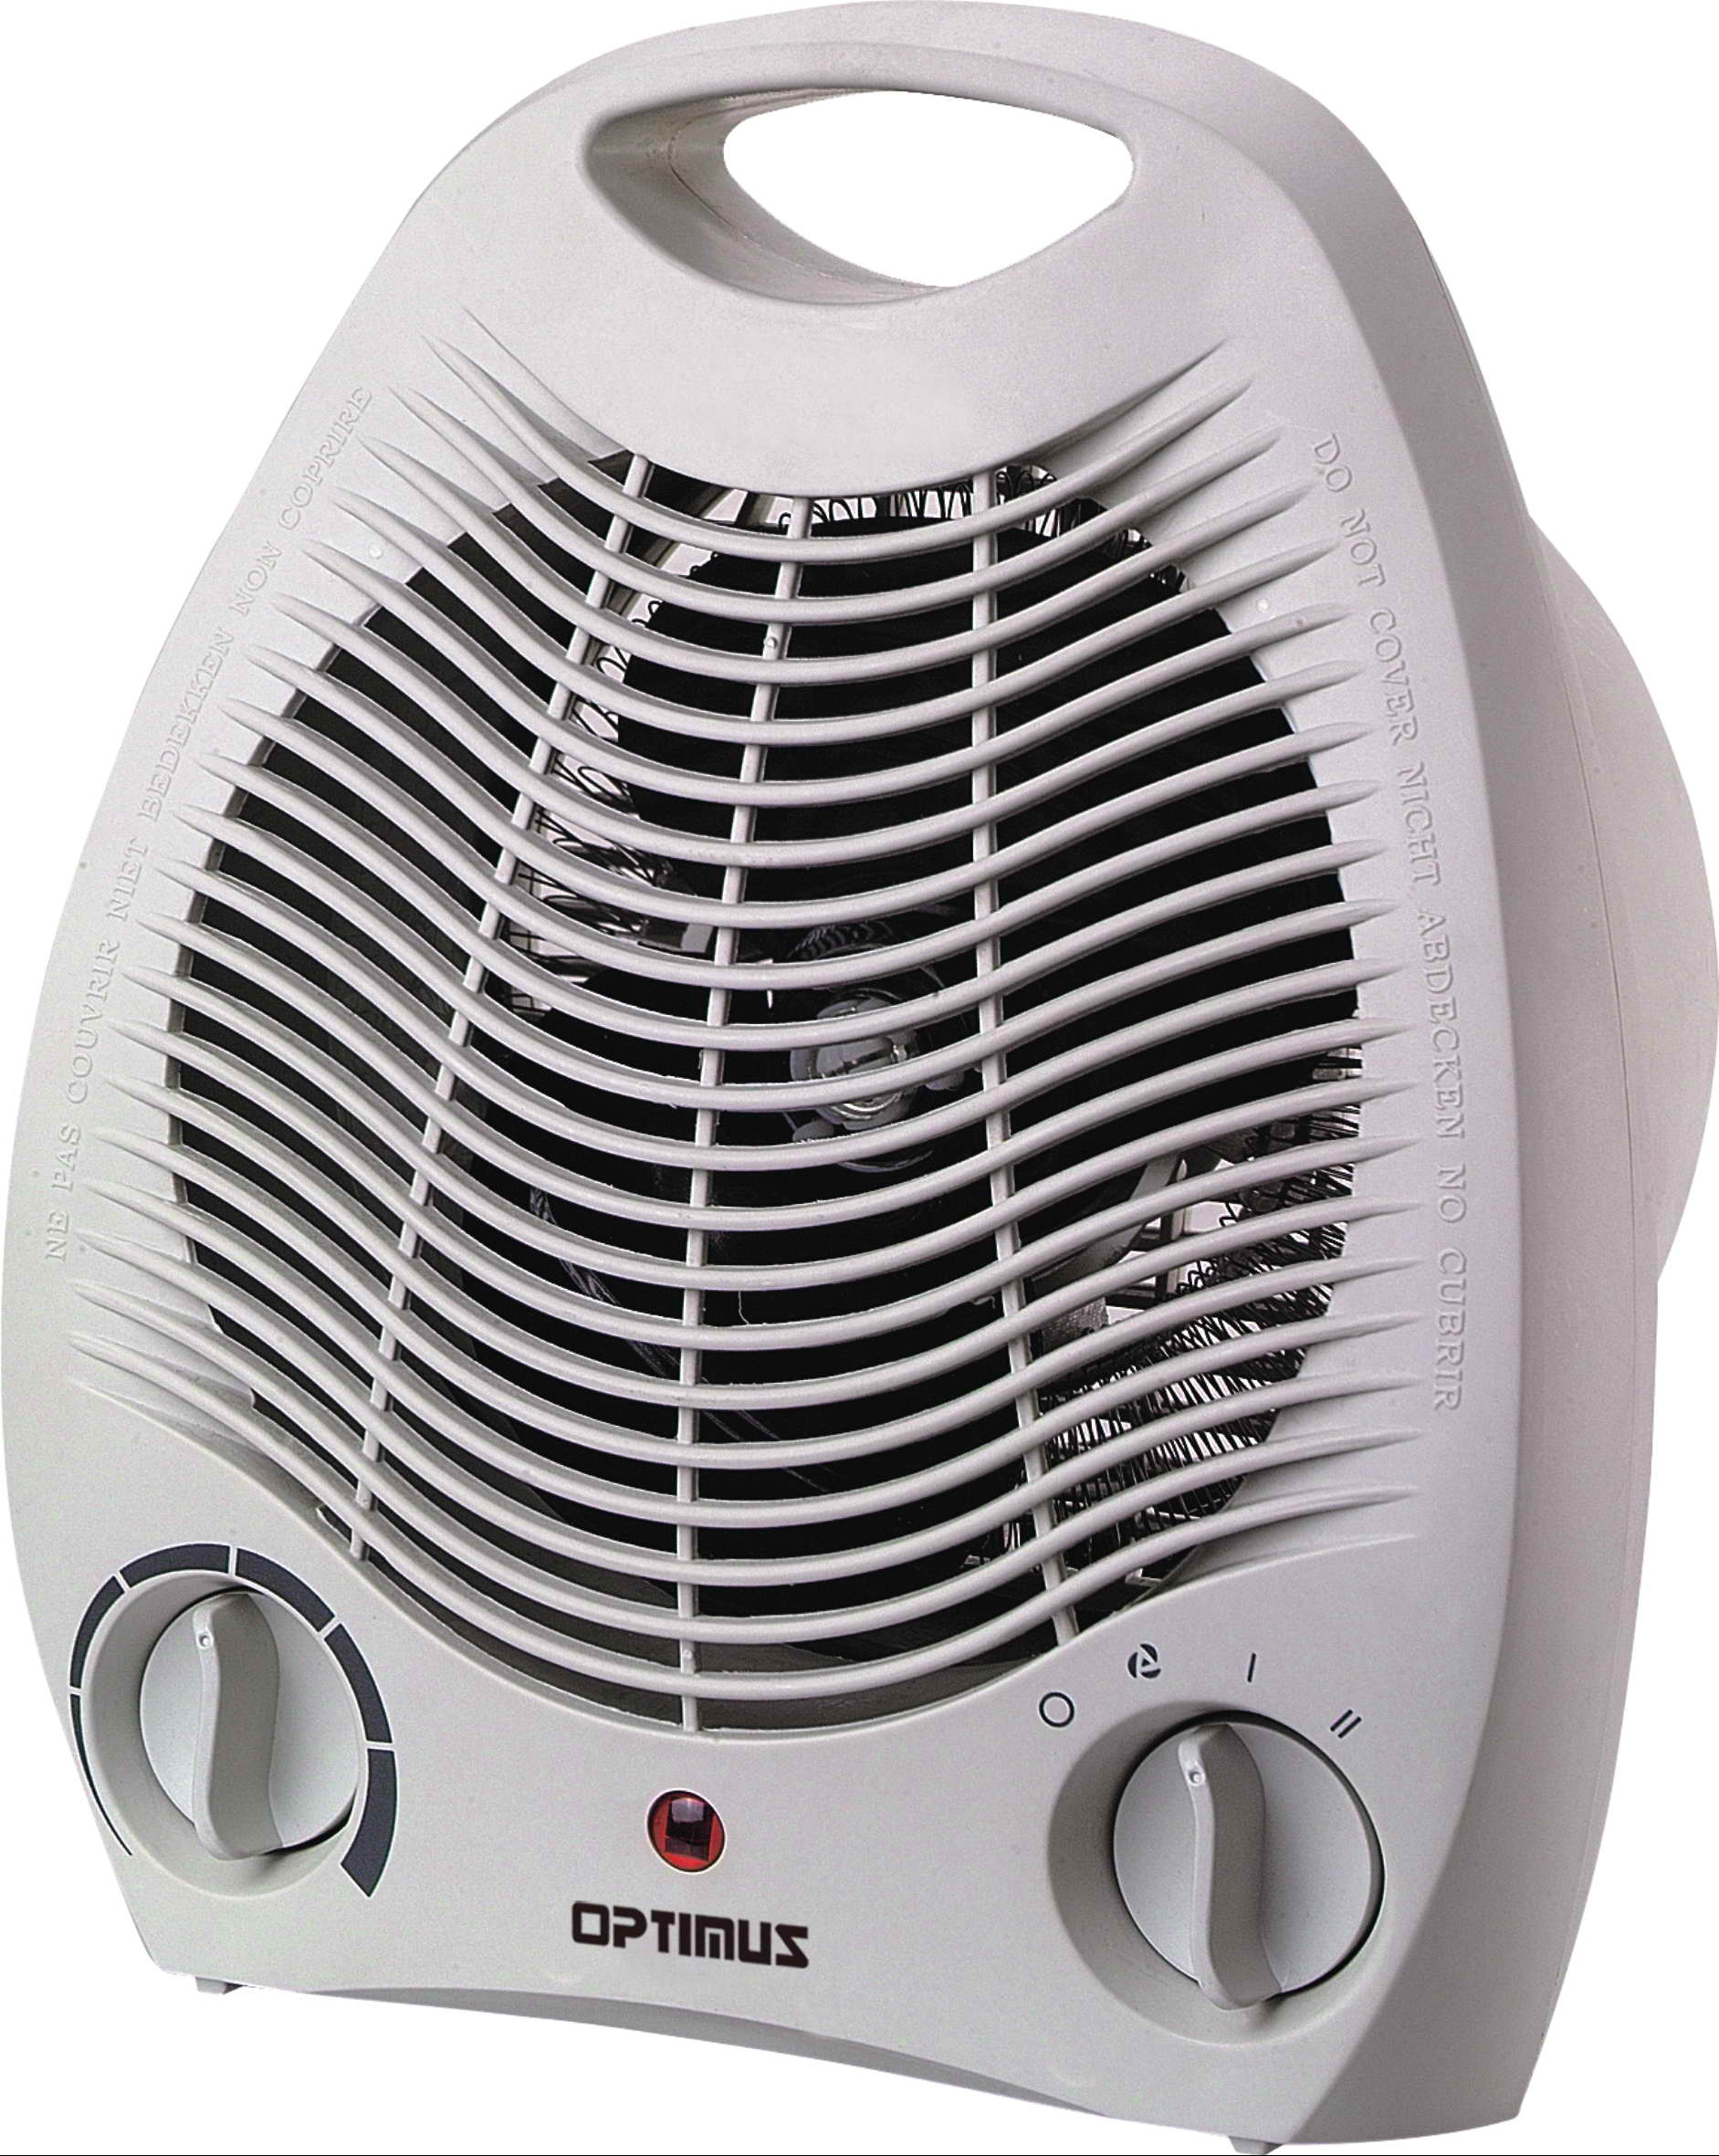 Optimus lvh1321 portable fan heater with thermostat